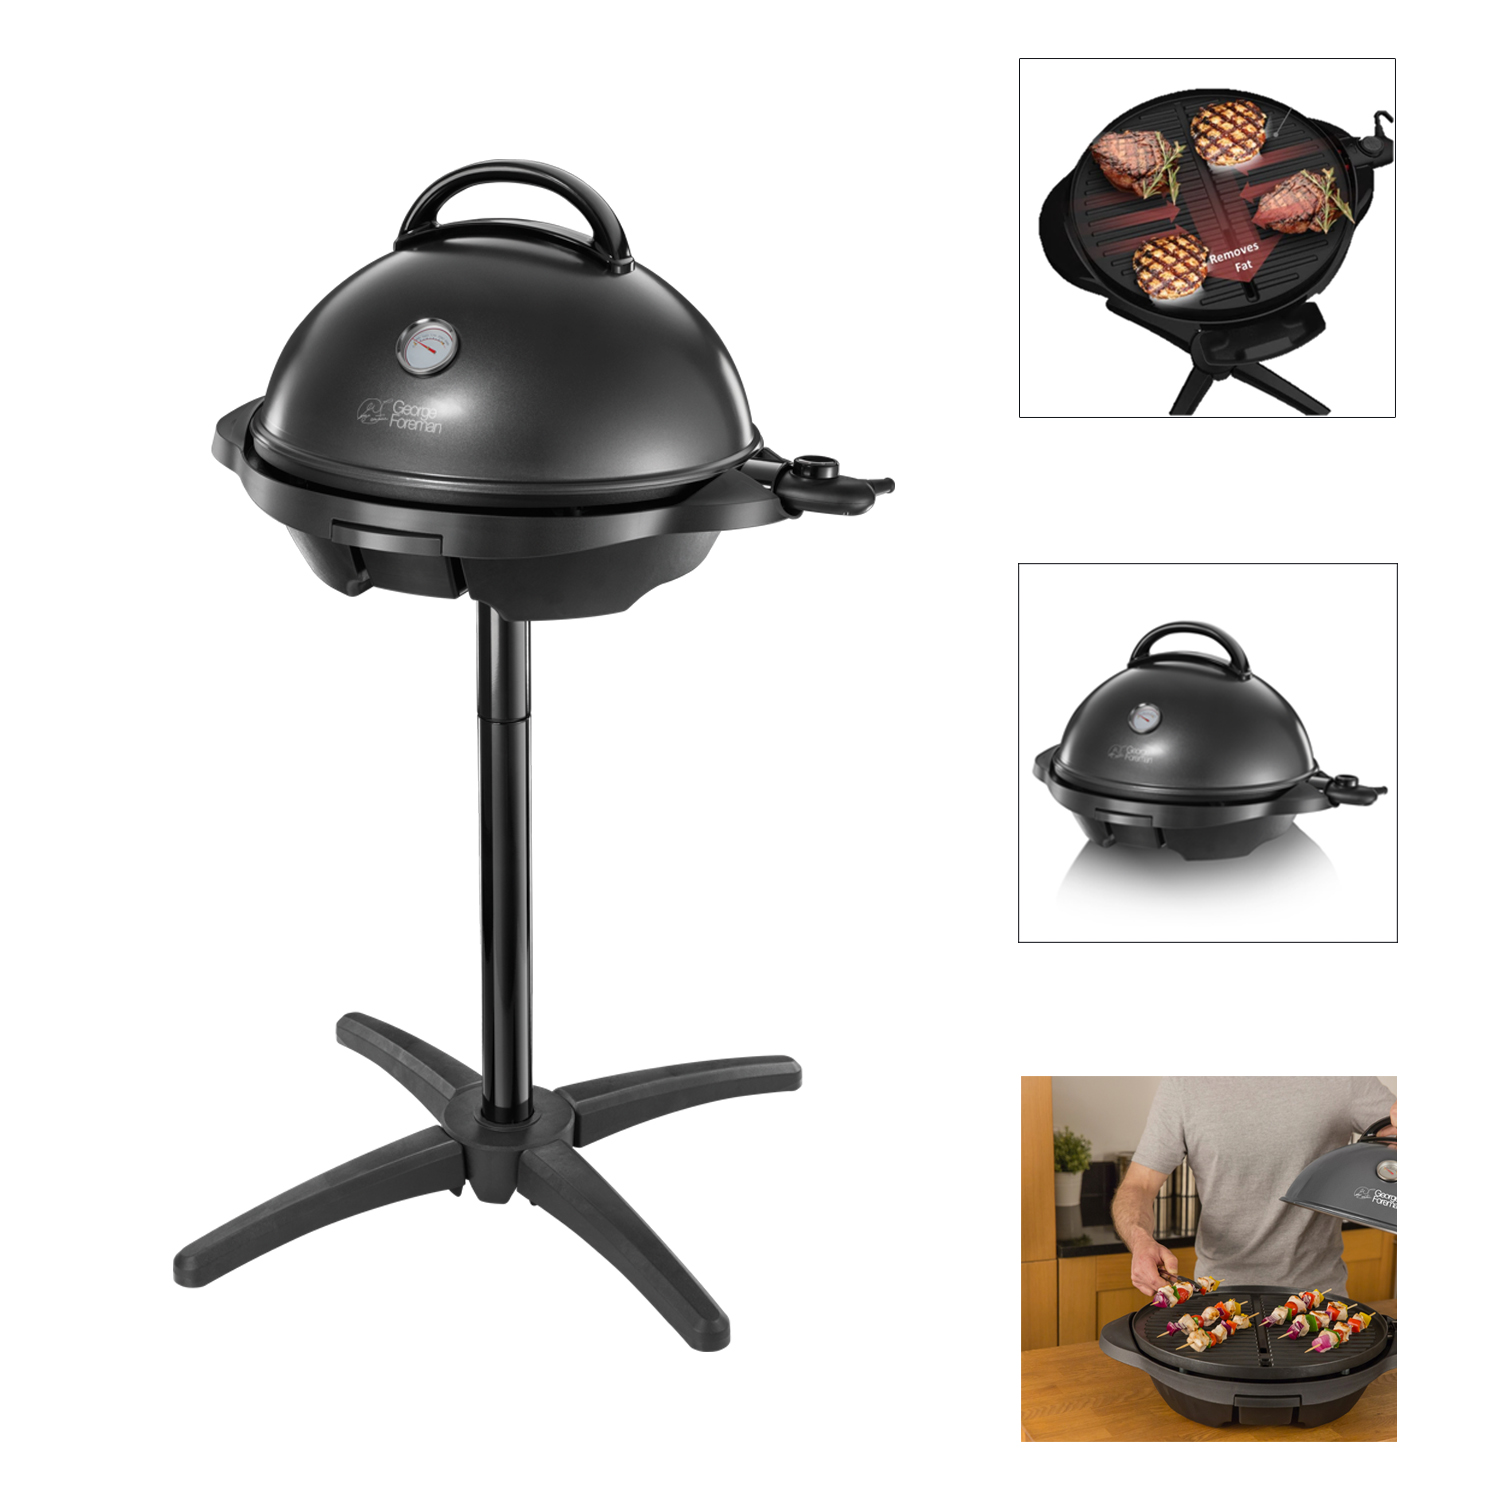 Russell Hobbs George Foreman Indoor & Outdoor Grill Removable Stand 3